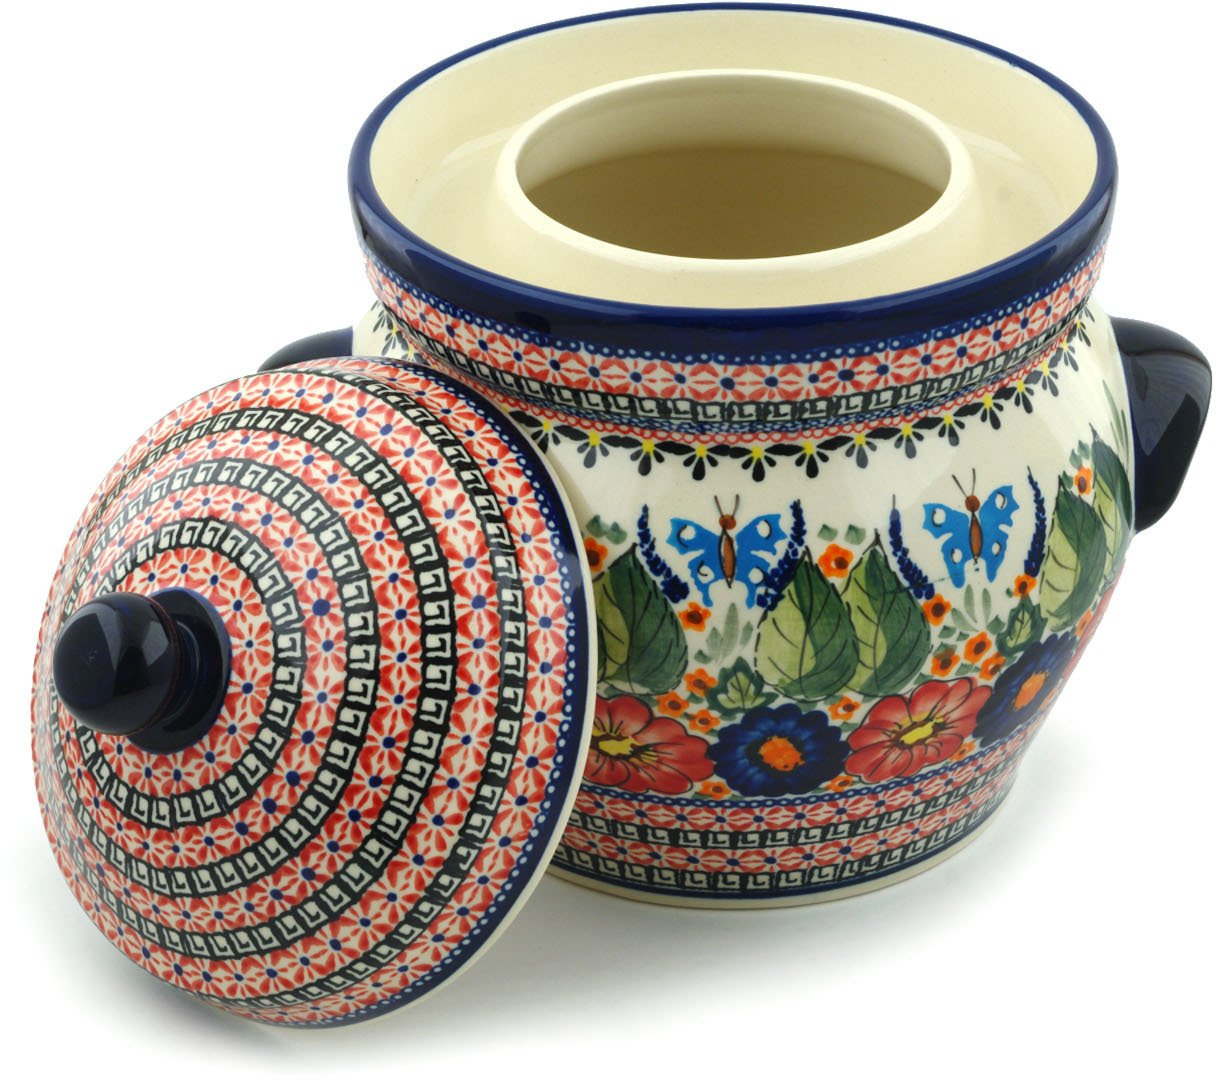 Polish Pottery Fermenting Crock Pot with Water Seal (1 Gallon) Spring Splendor UNIKAT by Polmedia Polish Pottery